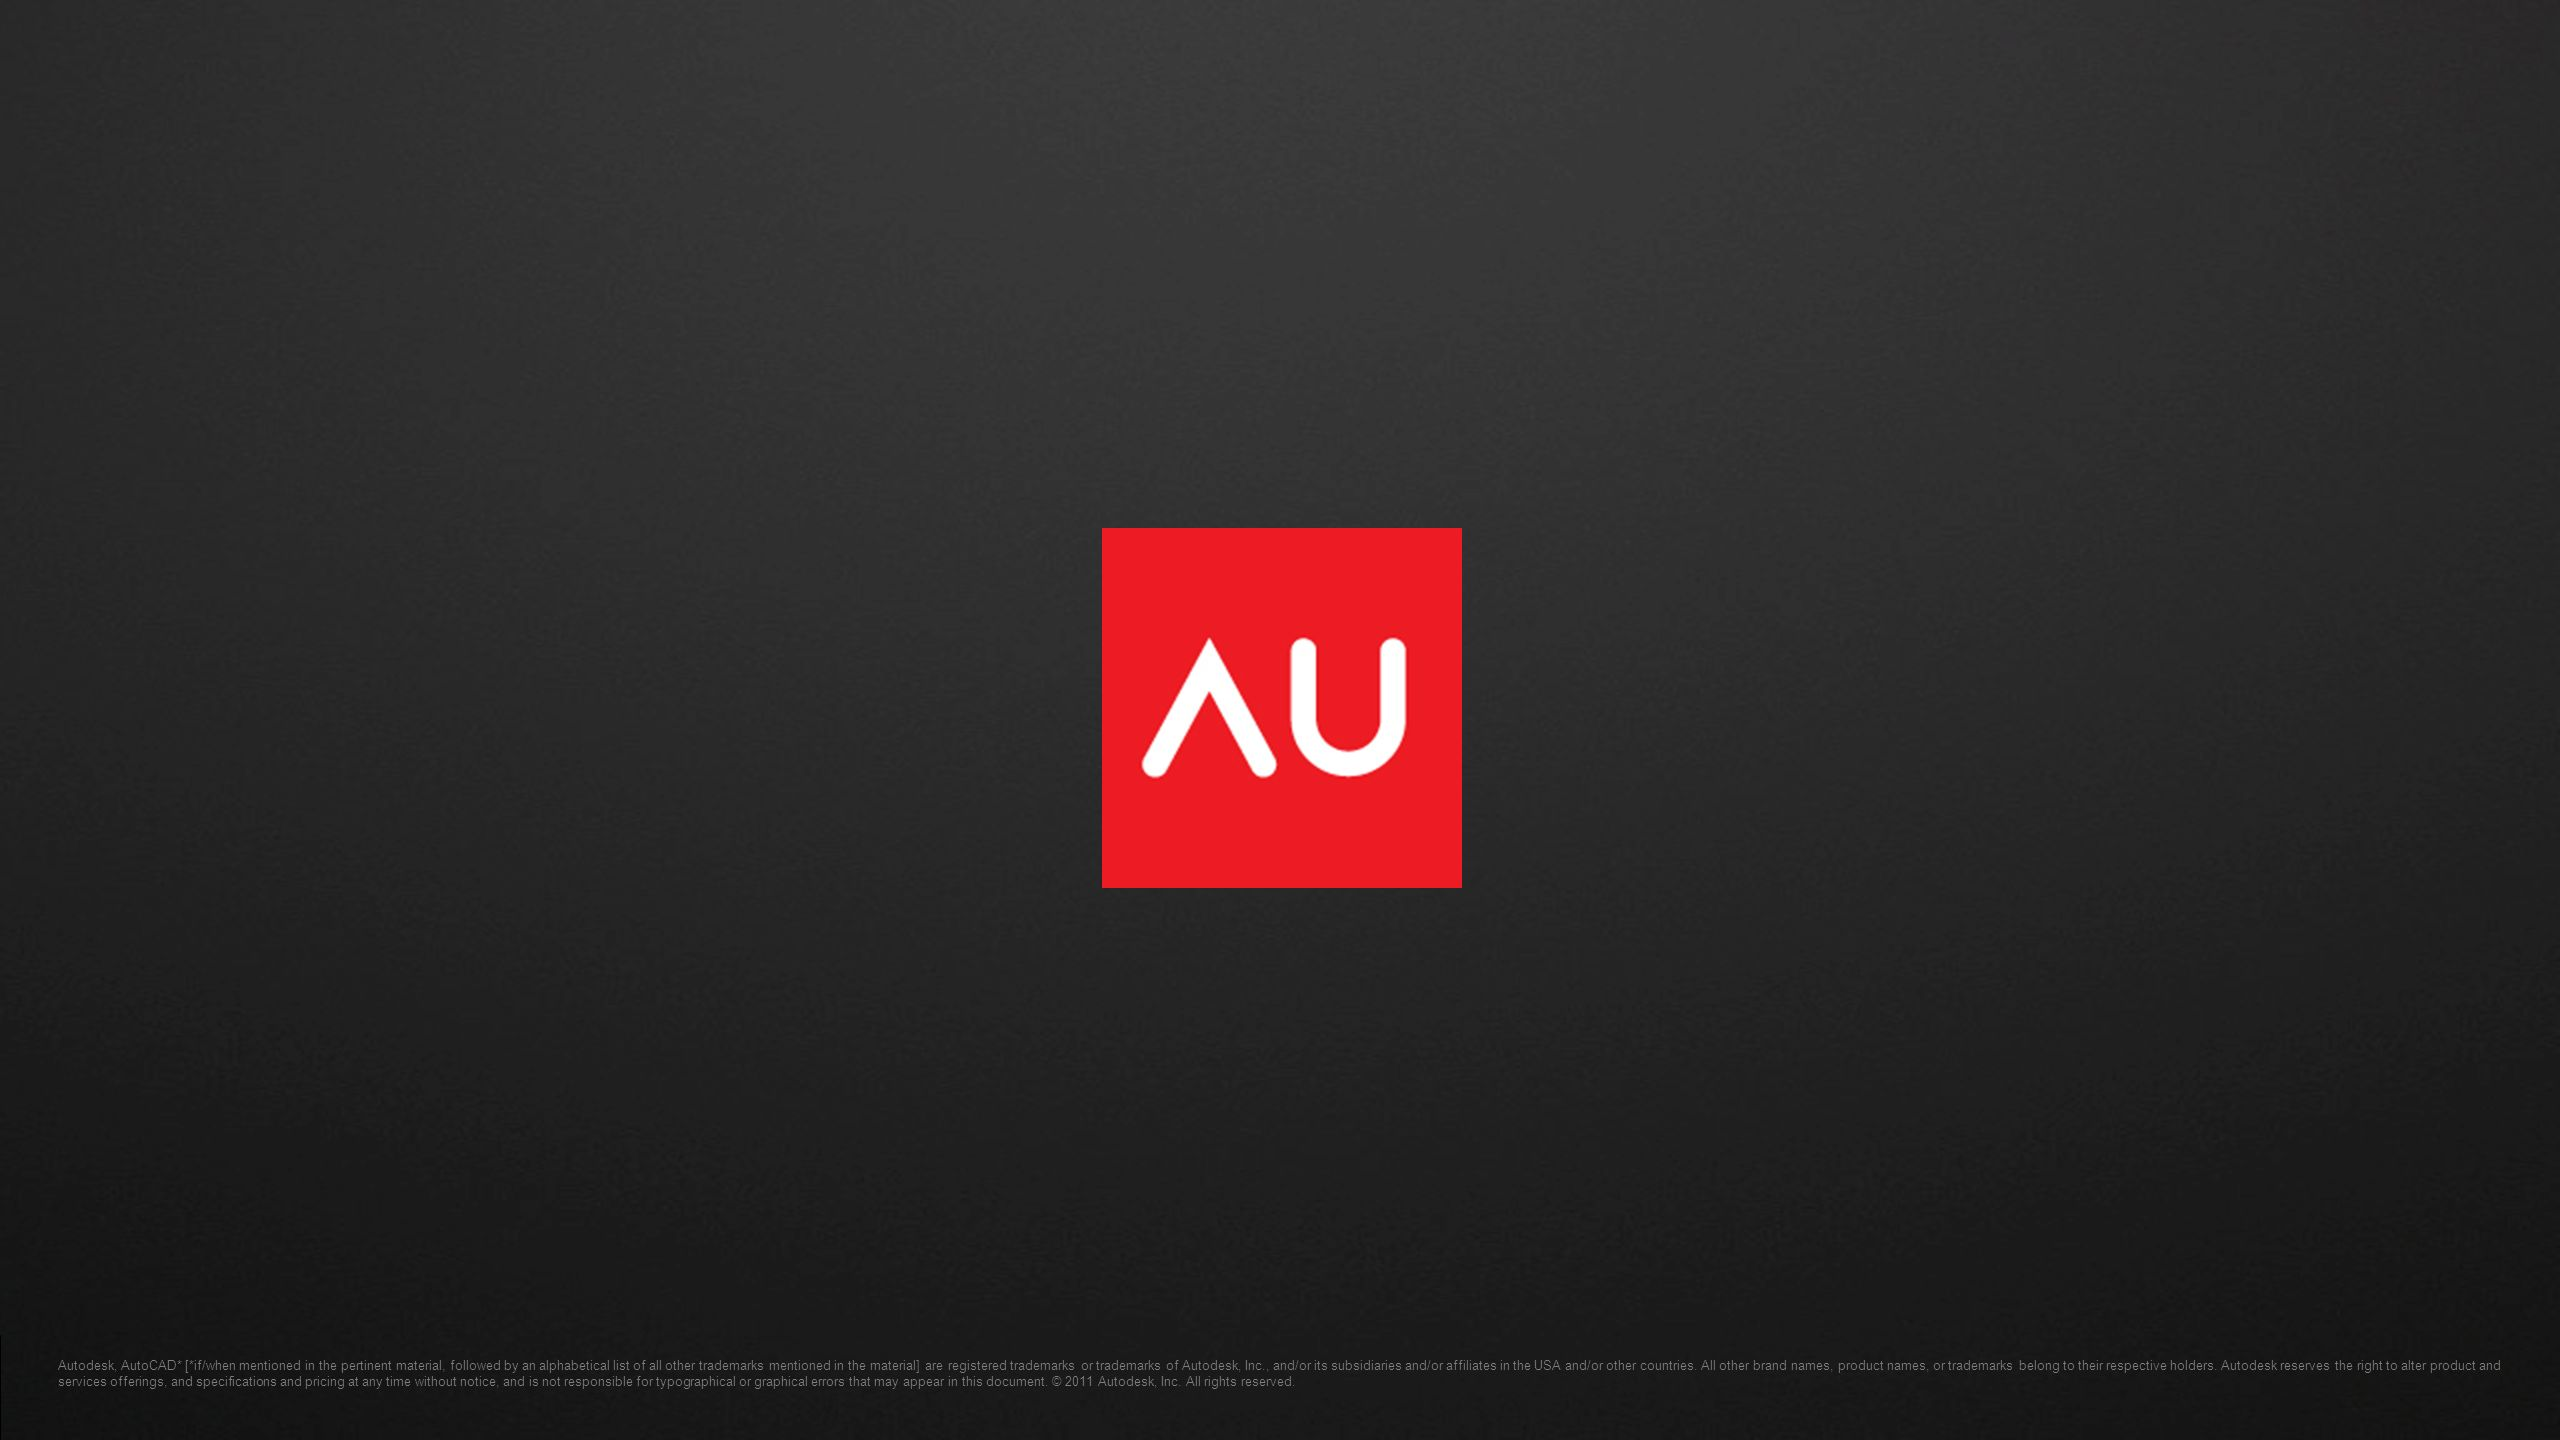 © 2011 Autodesk Autodesk, AutoCAD* [*if/when mentioned in the pertinent material, followed by an alphabetical list of all other trademarks mentioned in the material] are registered trademarks or trademarks of Autodesk, Inc., and/or its subsidiaries and/or affiliates in the USA and/or other countries.